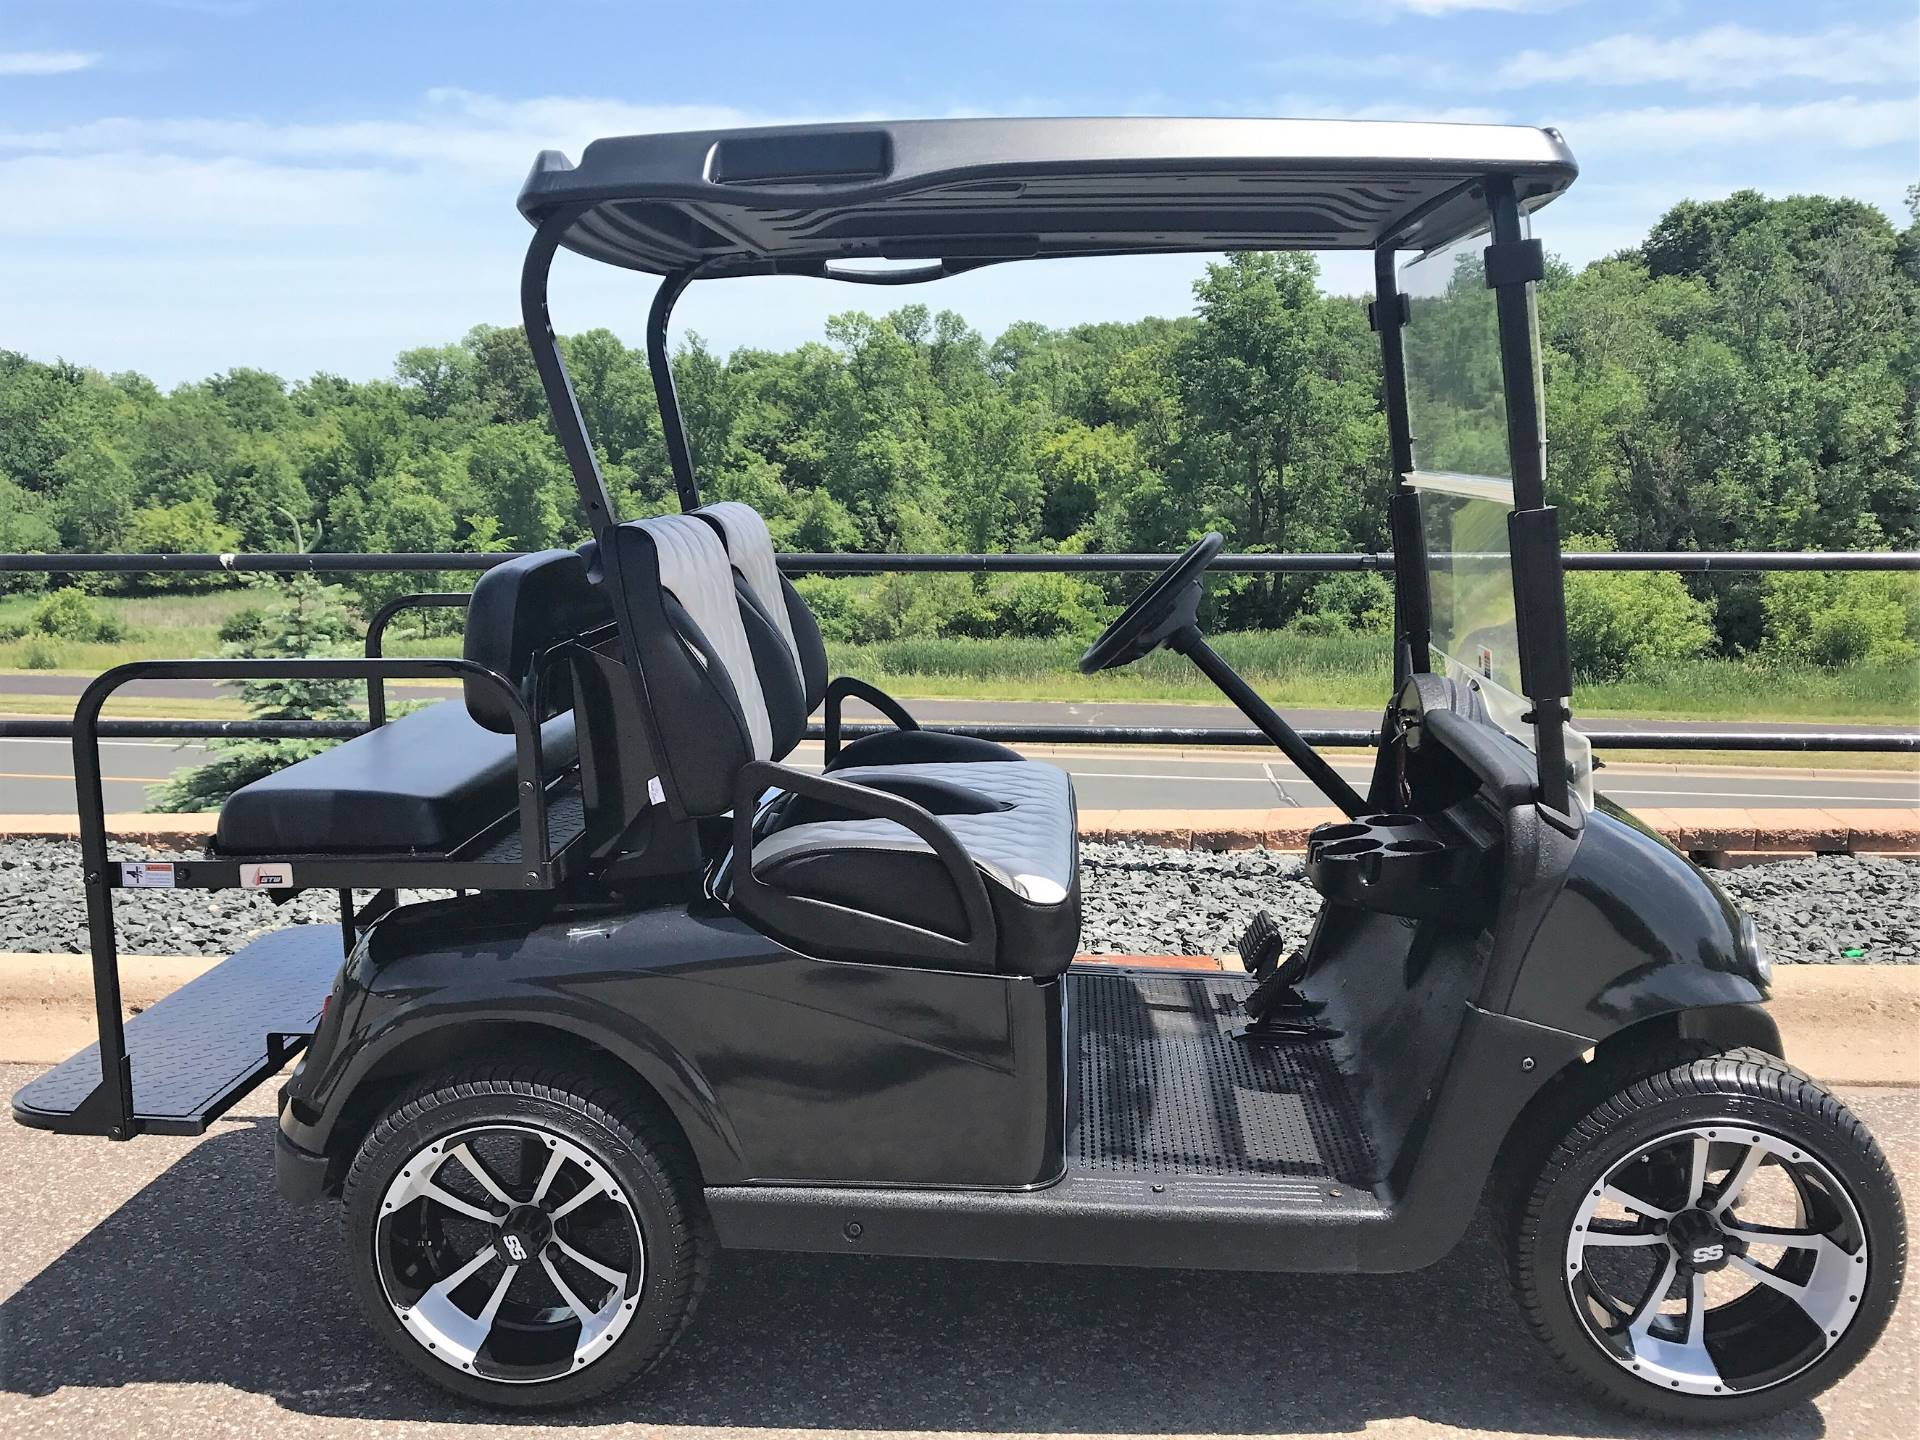 2014 E-Z-Go RXV Golf Carts Otsego Minnesota BTO5318558 on lincoln on a rail cart, 2013 ezgo txt, 2013 ezgo electric golf cart,